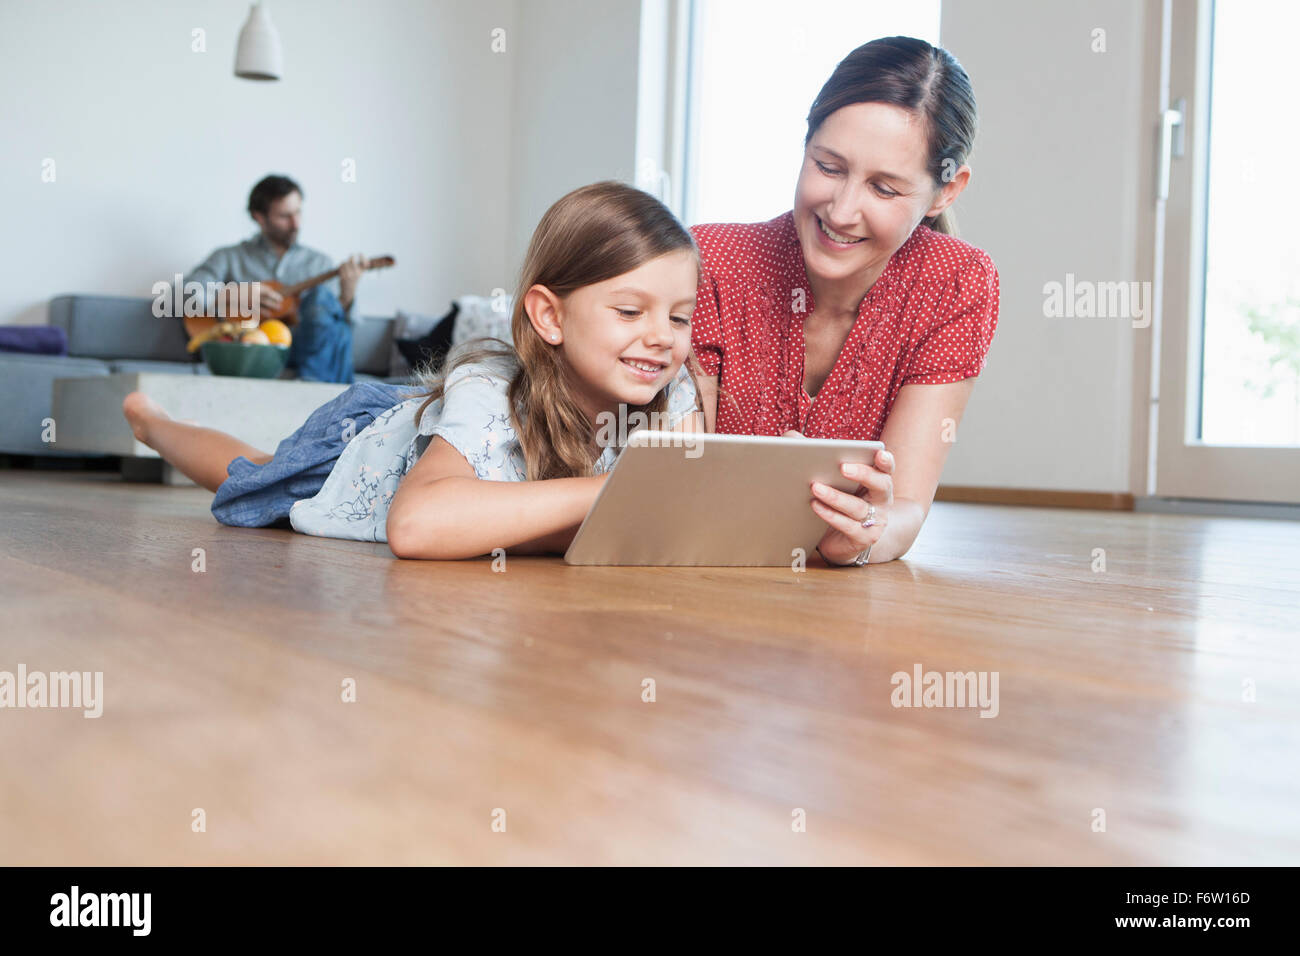 Mother and daughter lying on floor using digital tablet, father making music in background Stock Photo